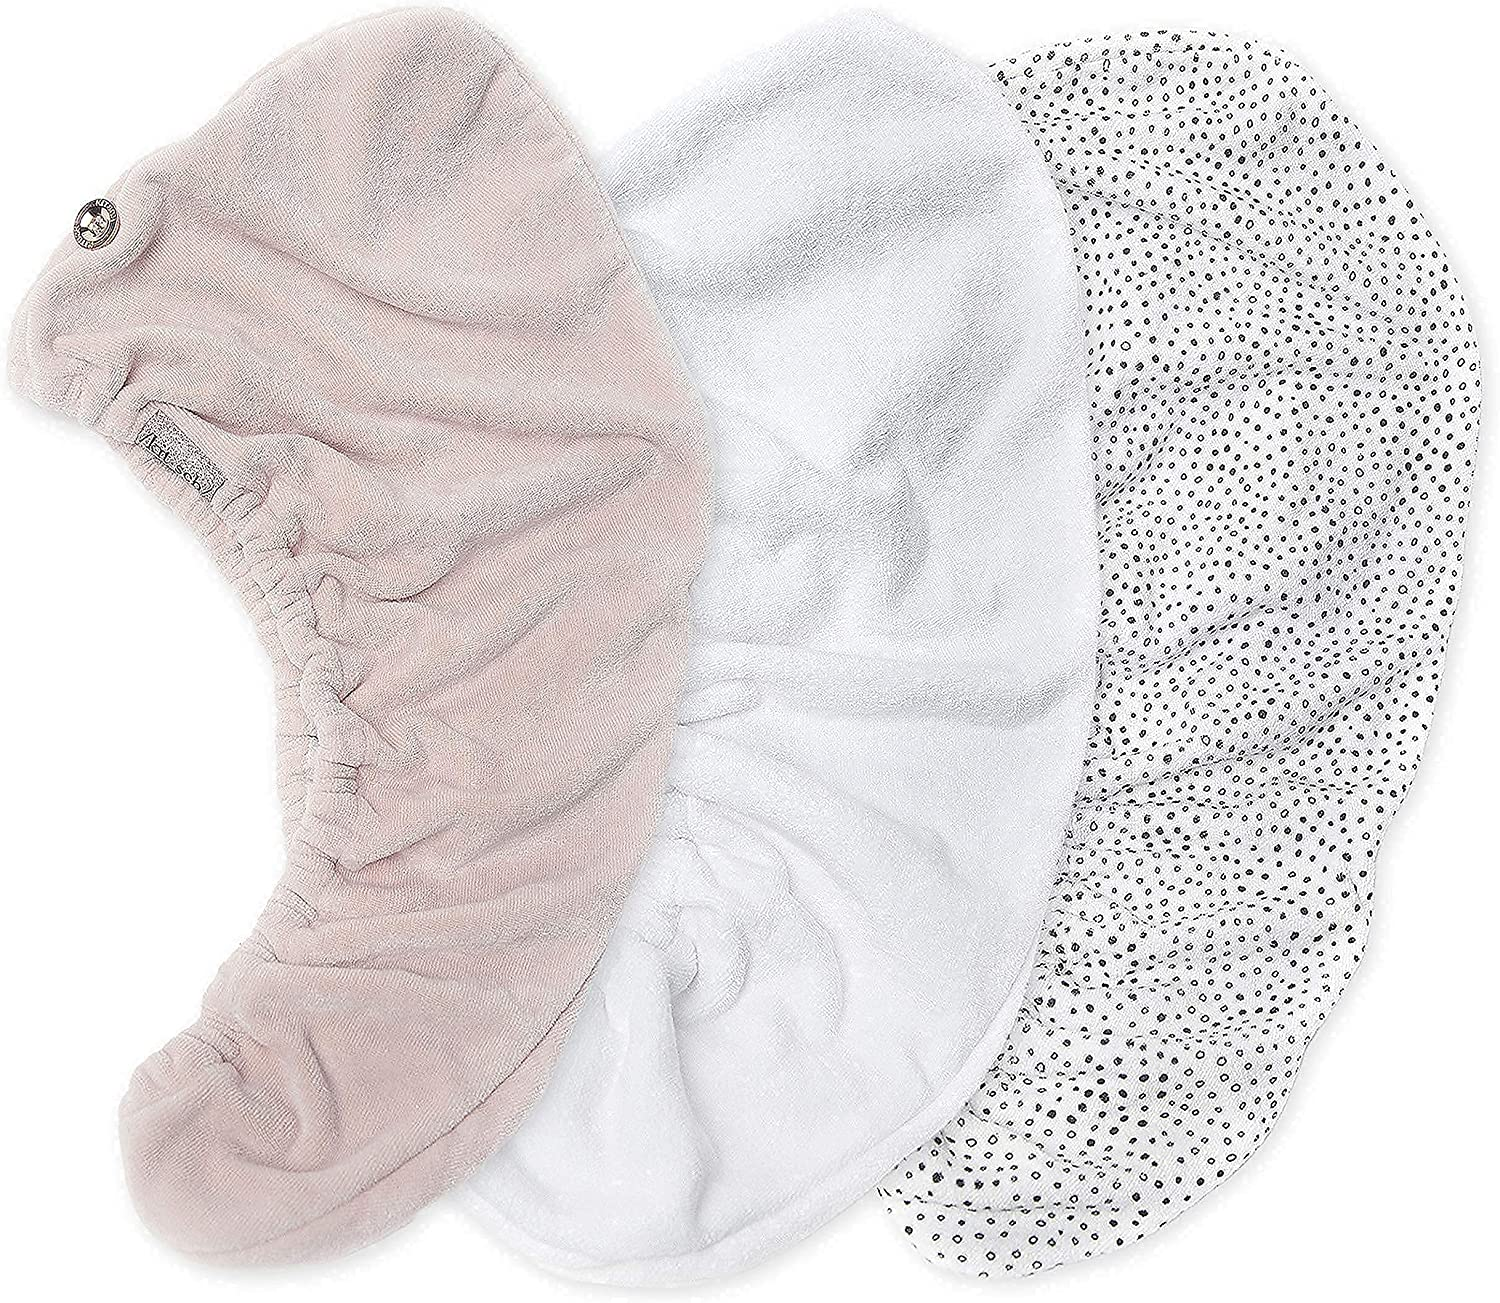 Kitsch Microfiber Hair Towel Wrap for Ha Max 63% OFF Wet Drying Turban Max 75% OFF